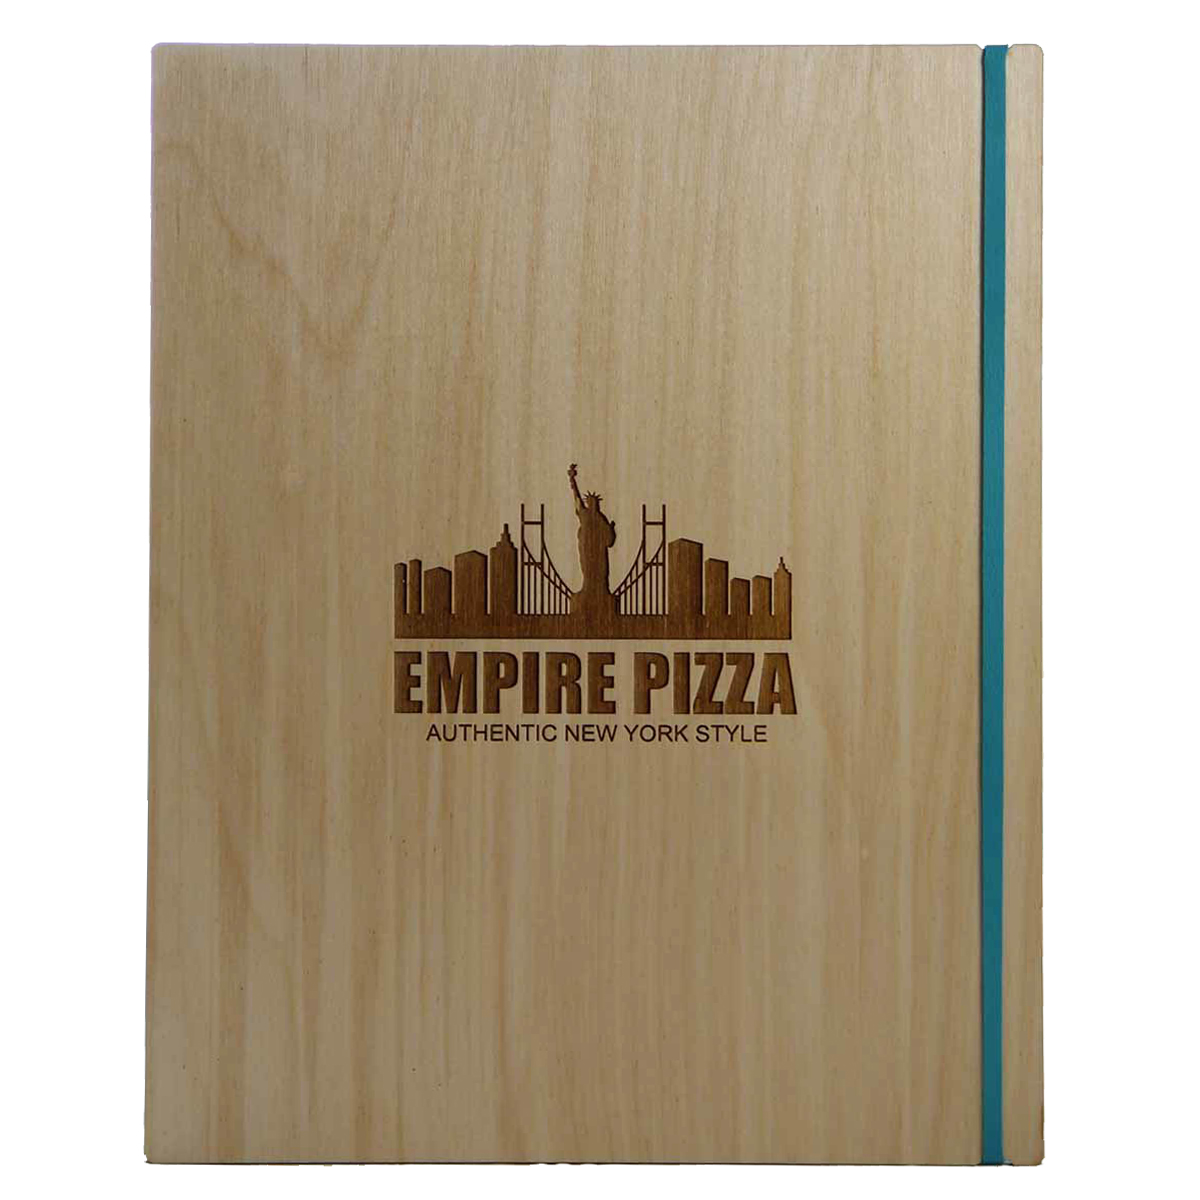 Baltic Birch Menu Board with Vertical Band 8.5x11 in natural finish with laser engraved logo.